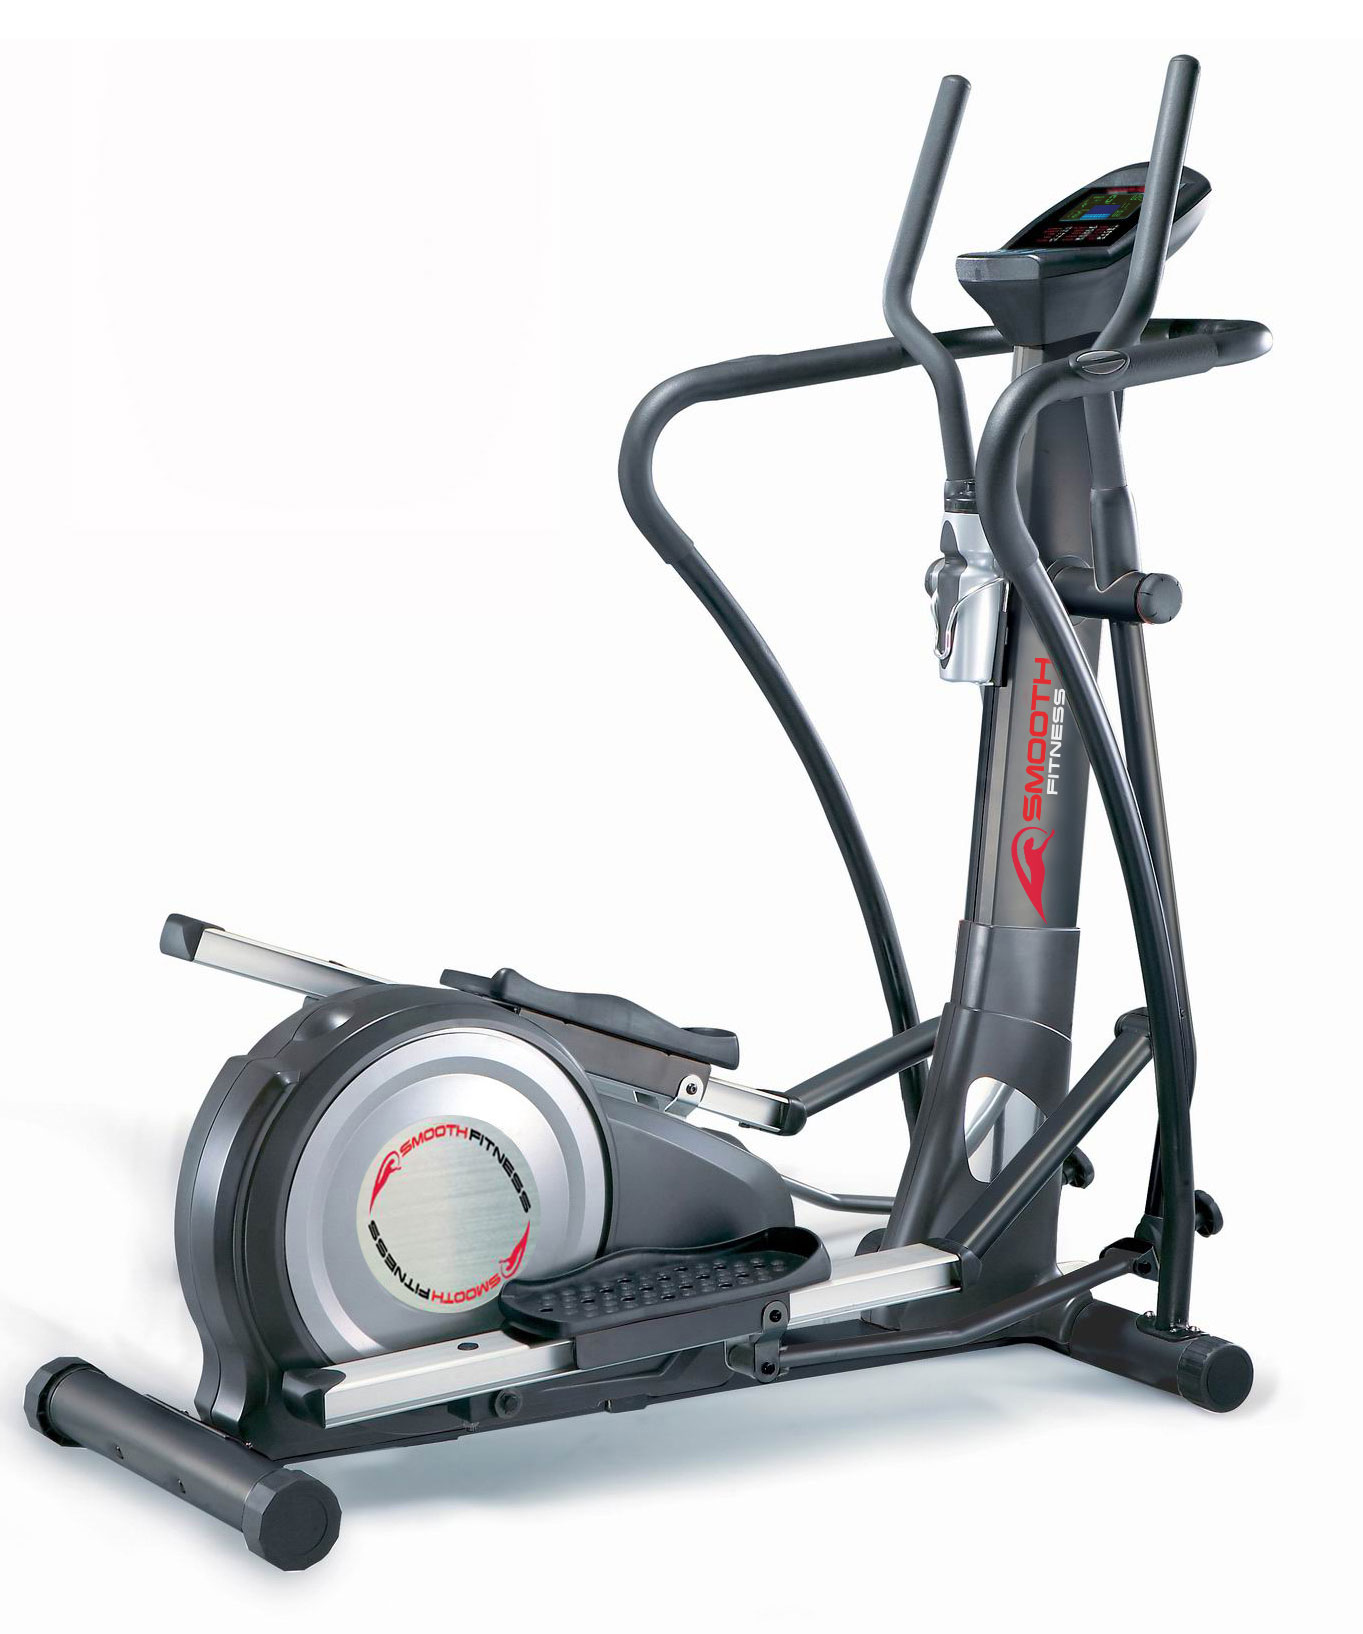 Smooth CE 3.0DS Elliptical Review